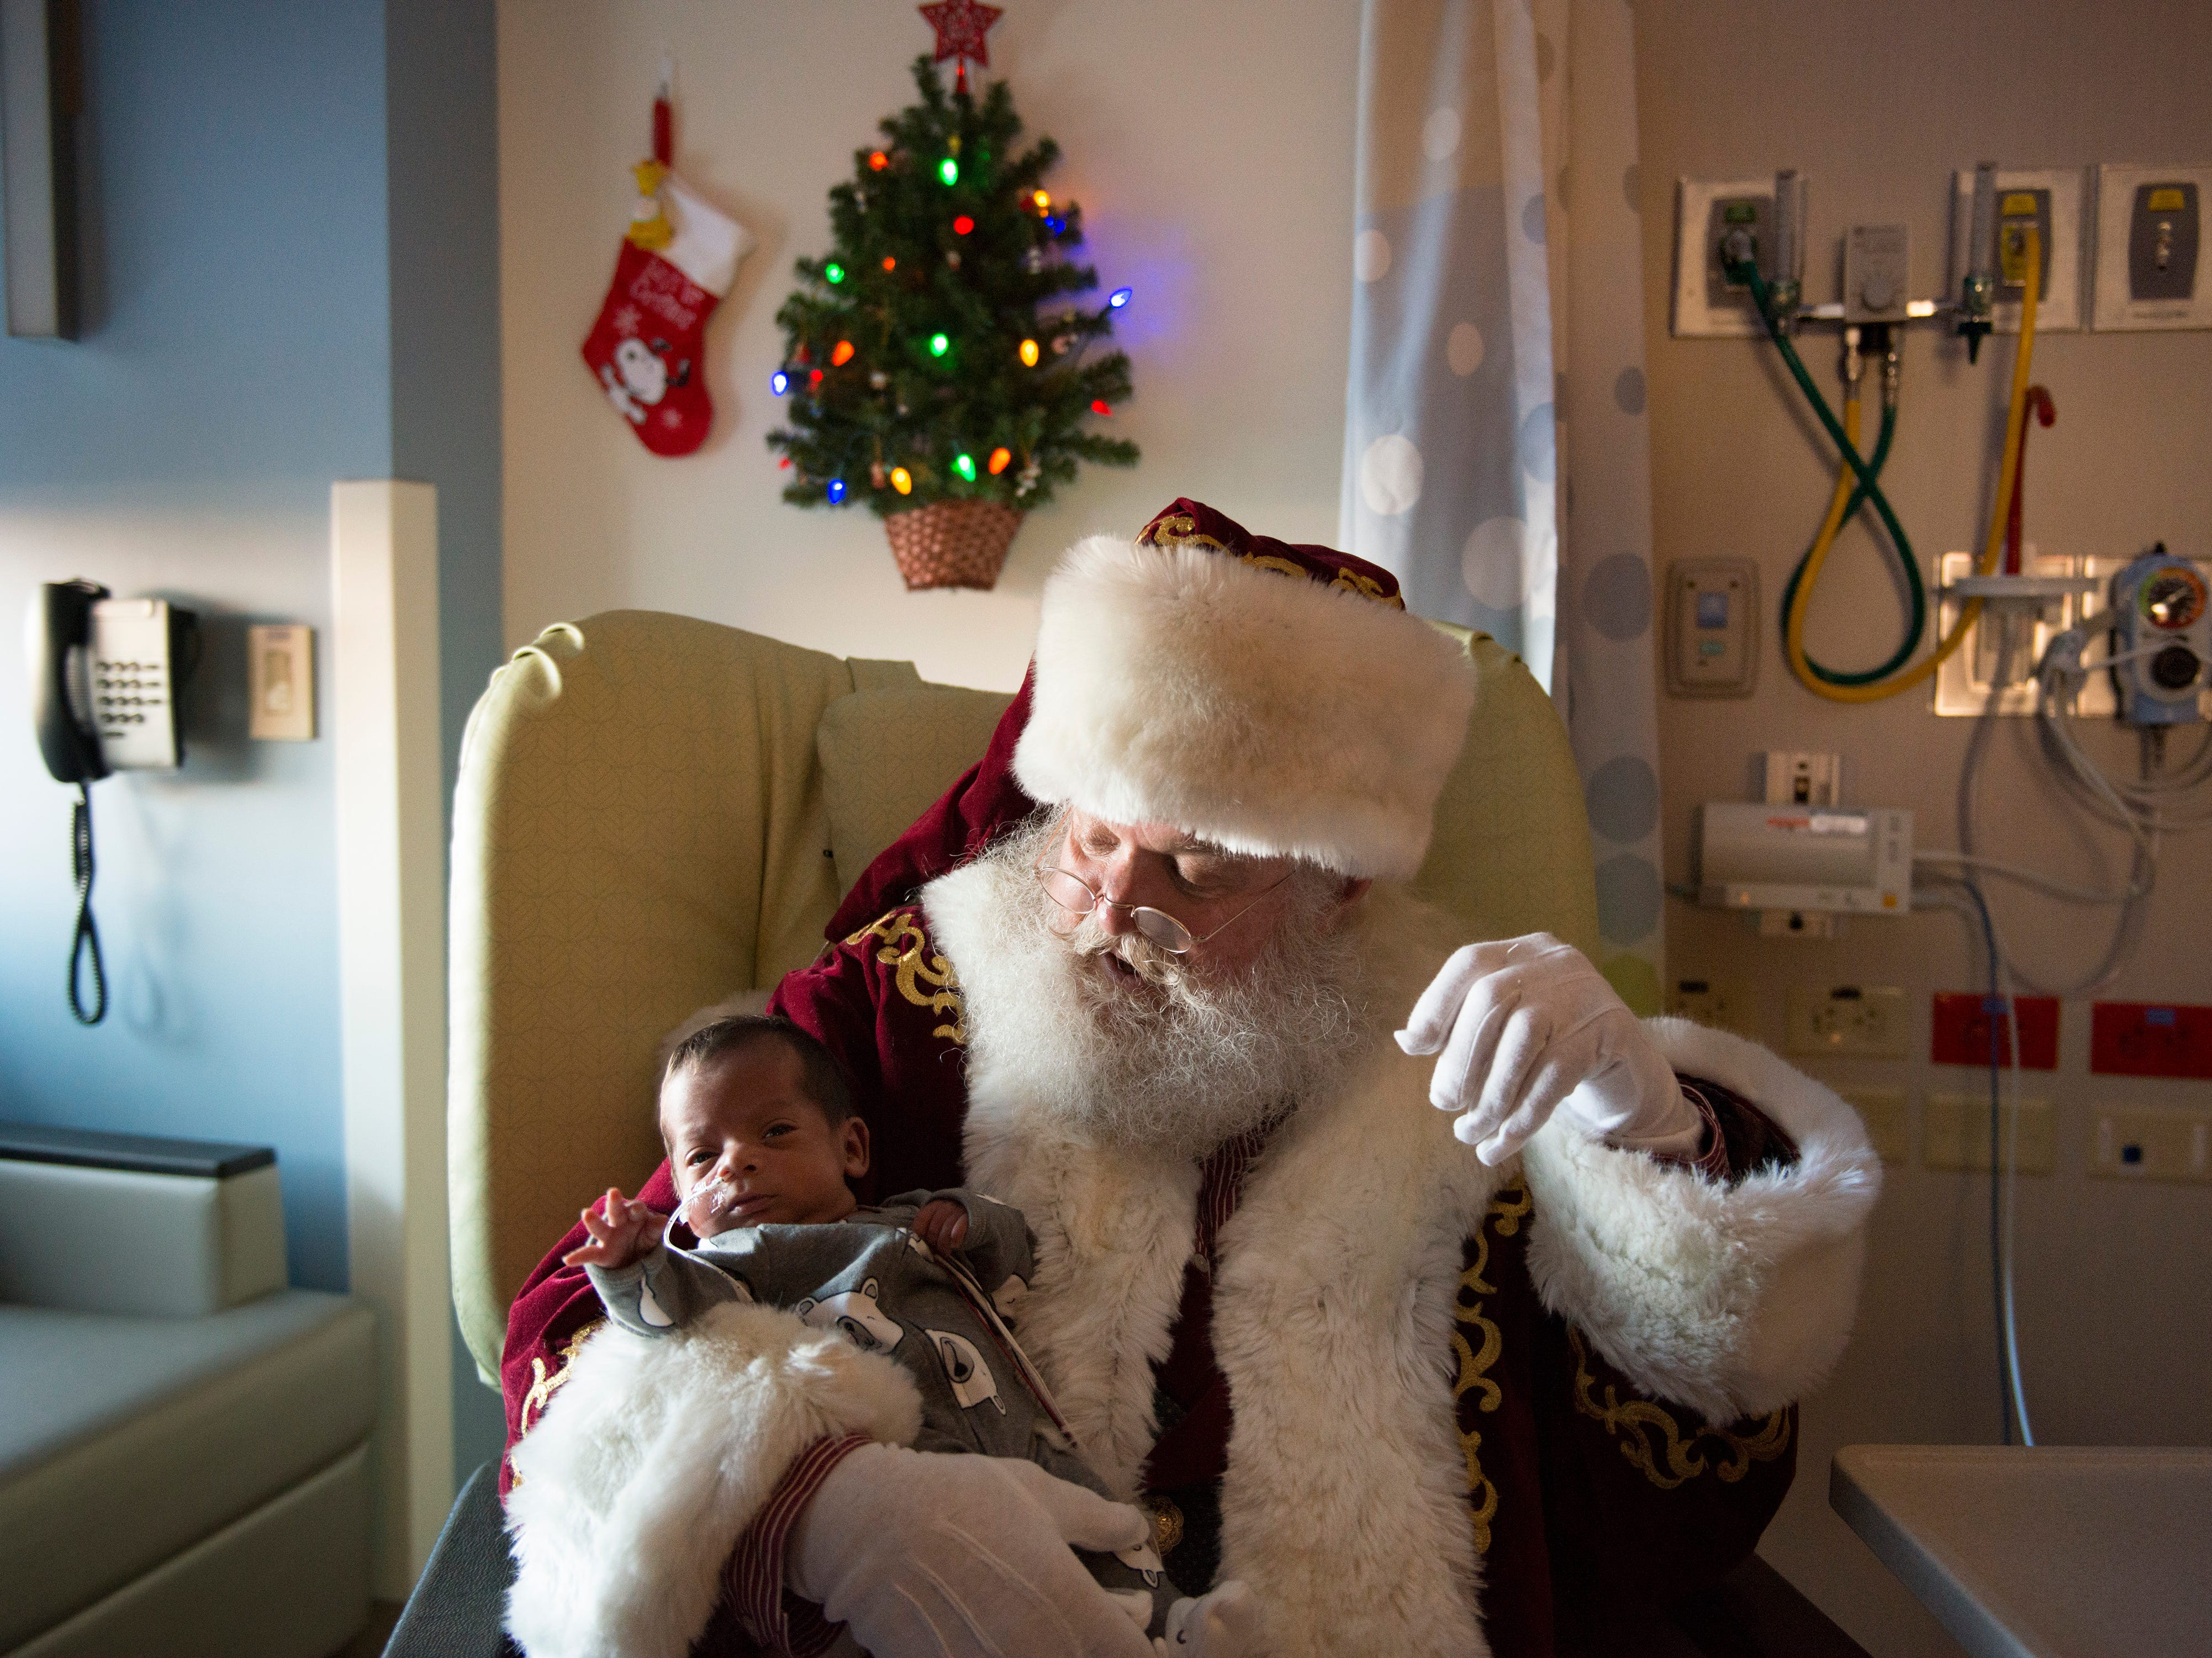 Santa Claus, portrayed by Moose Shattuck, holds Joseph Maldonado as he visits the neonatal intensive care unit at Poudre Valley Hospital on Tuesday December 18, 2018.